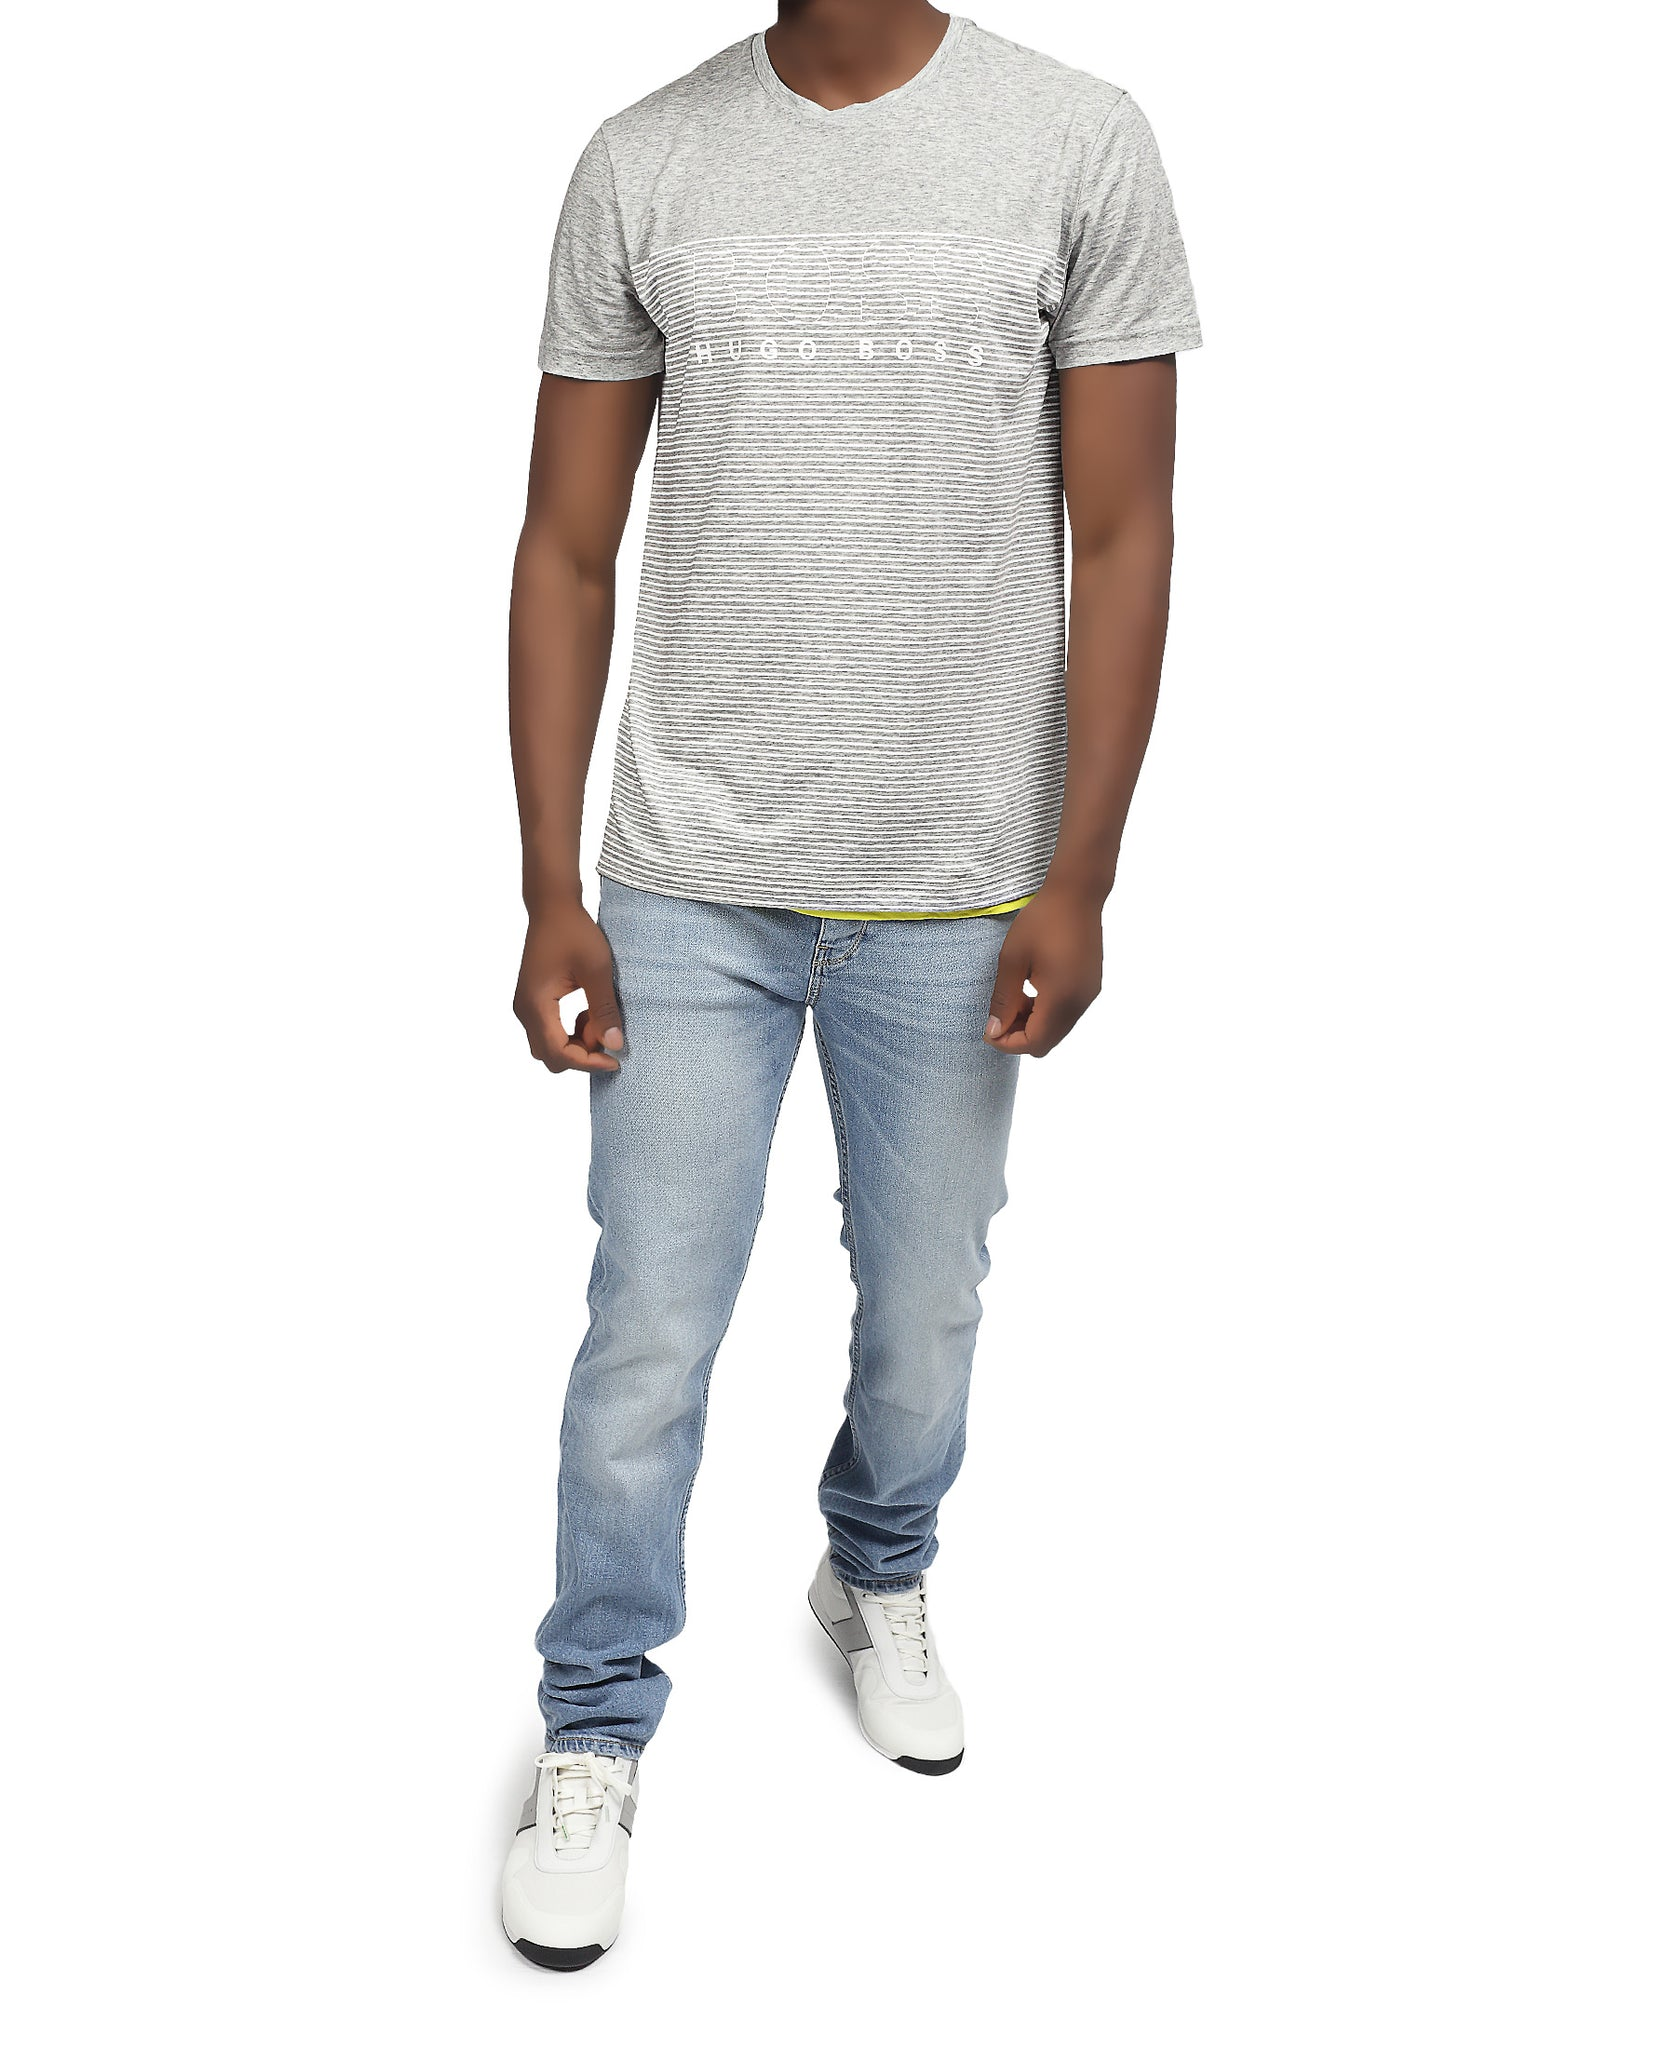 Slim Fit Hugo Boss T-Shirt - Grey